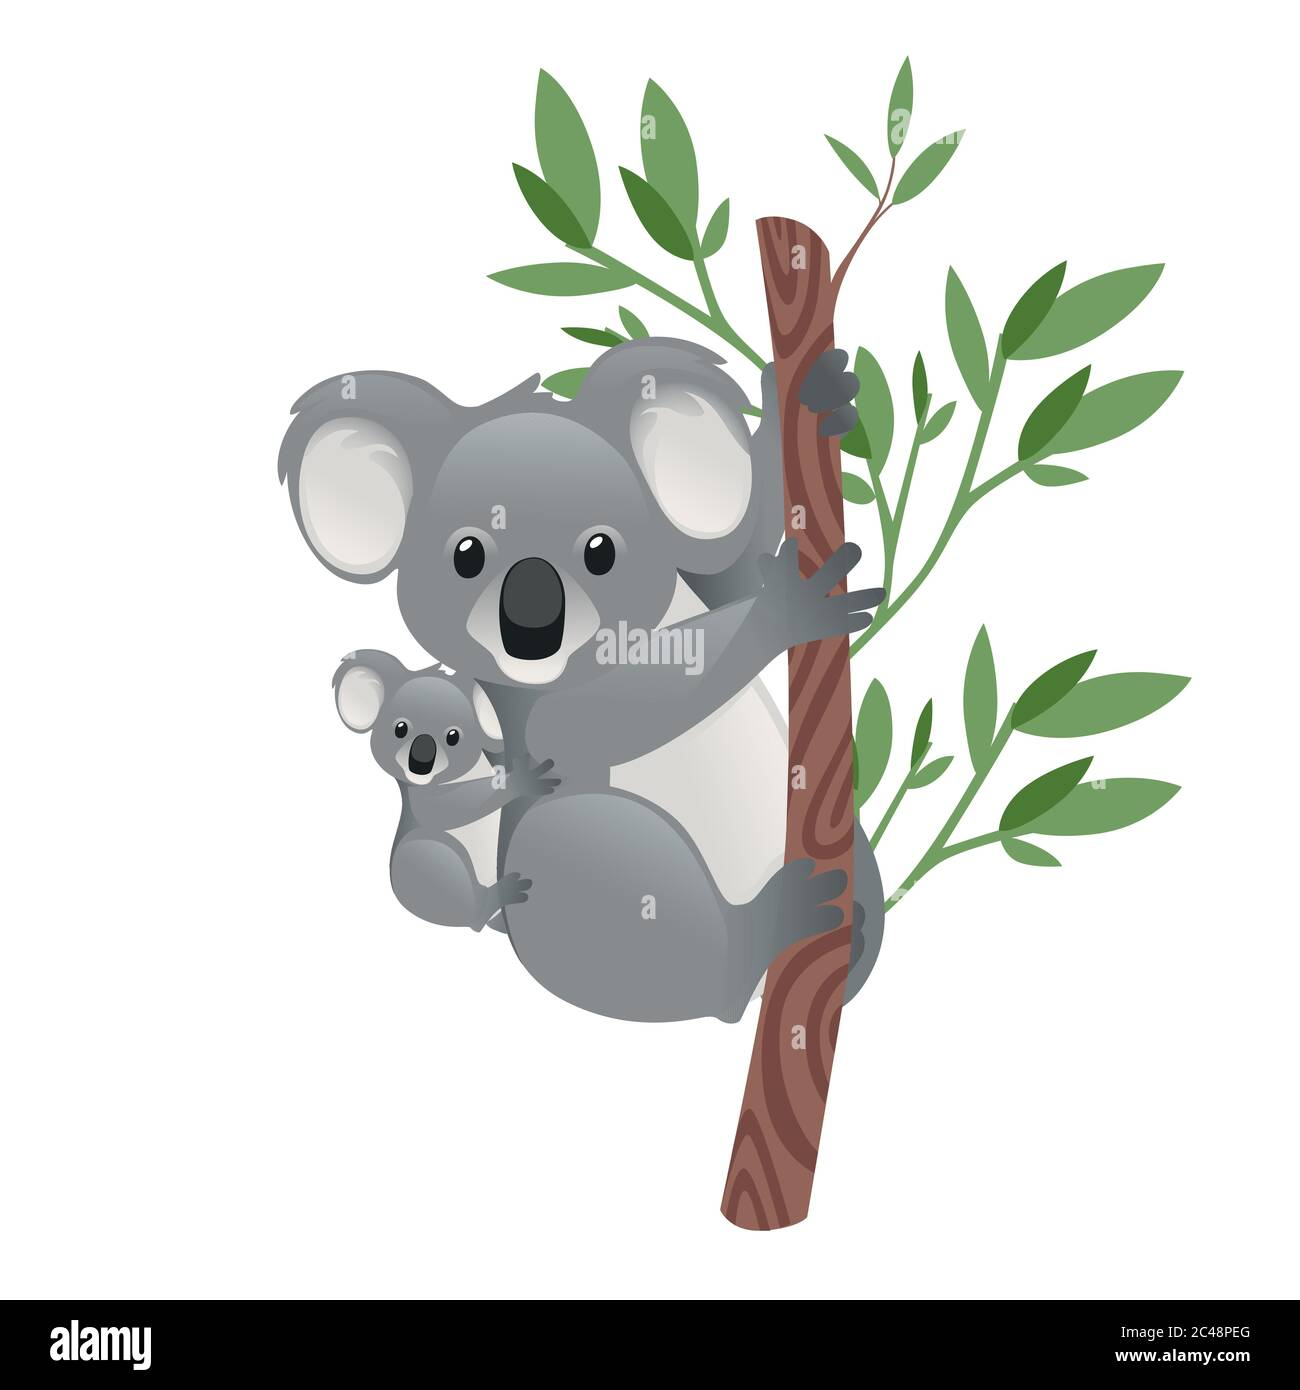 Cute Koala Family Mother With Children Sit On The Tree Cartoon Animal Design Flat Vector Illustration Isolated On White Background Stock Vector Image Art Alamy When researchers took infrared pictures of the koalas hugging trees , they realized that. https www alamy com cute koala family mother with children sit on the tree cartoon animal design flat vector illustration isolated on white background image364069624 html